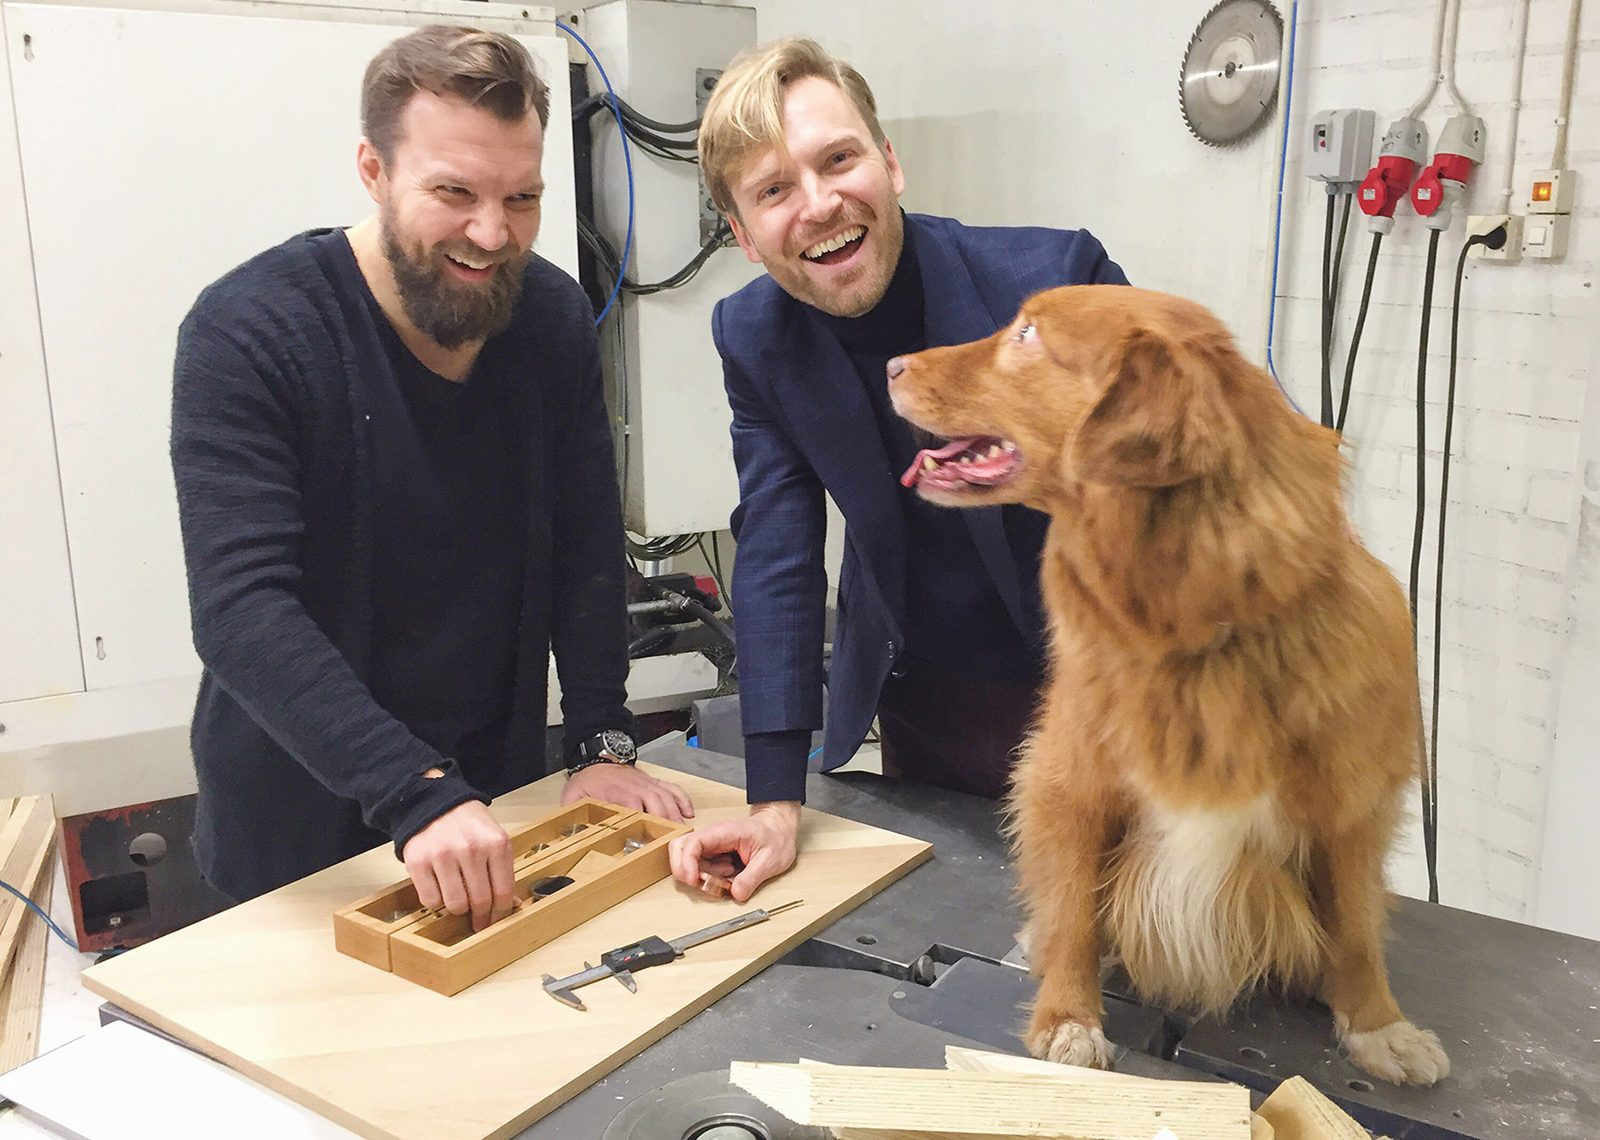 Man's best friend is also chummy with these two Helsinki-based businessmen.